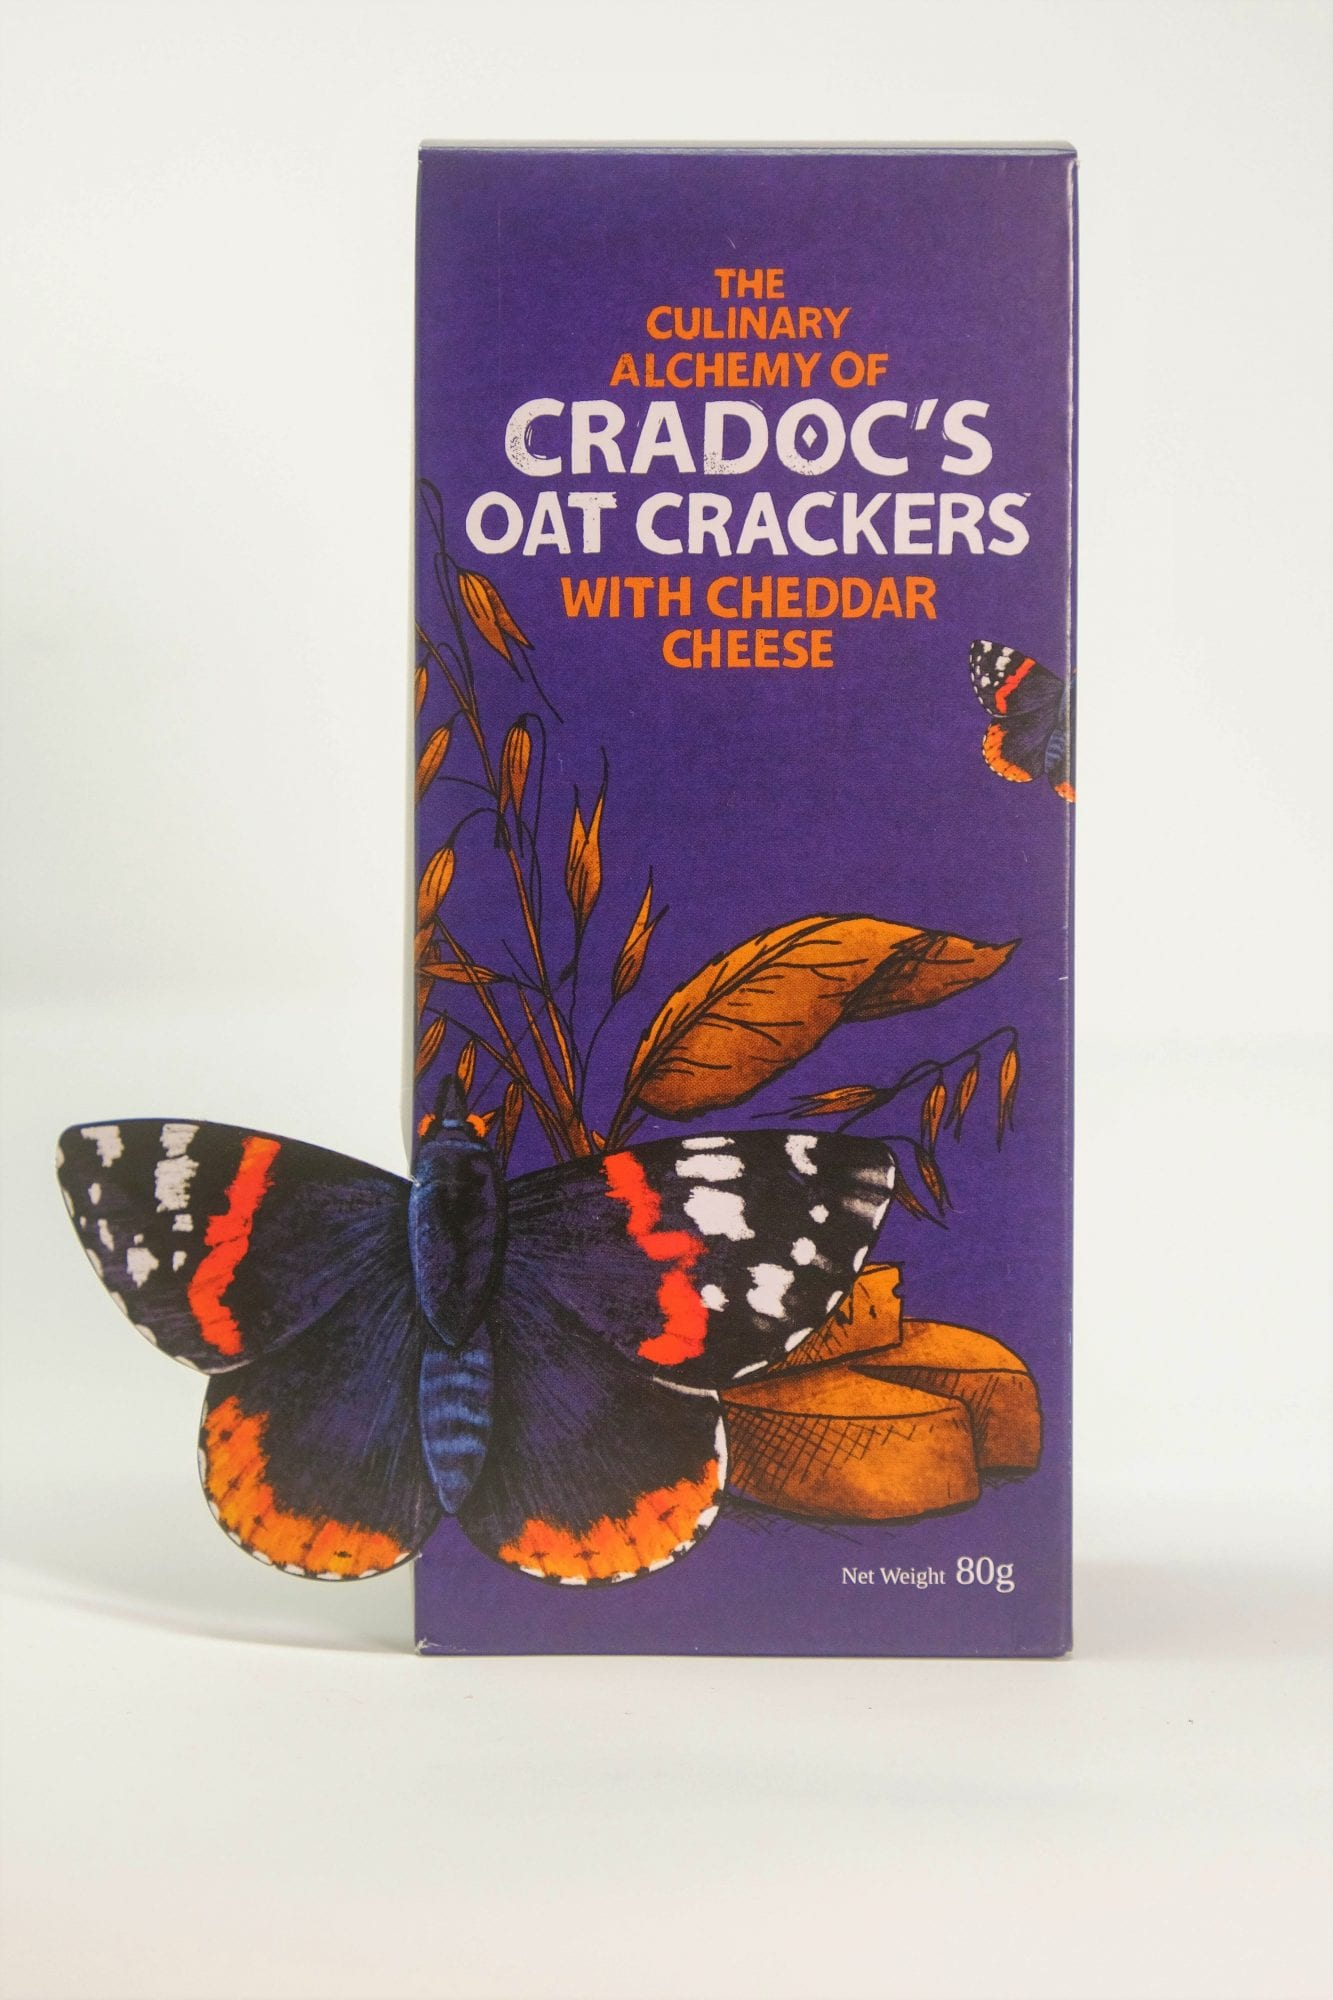 Cradoc's Oat Crackers with Cheddar Cheese